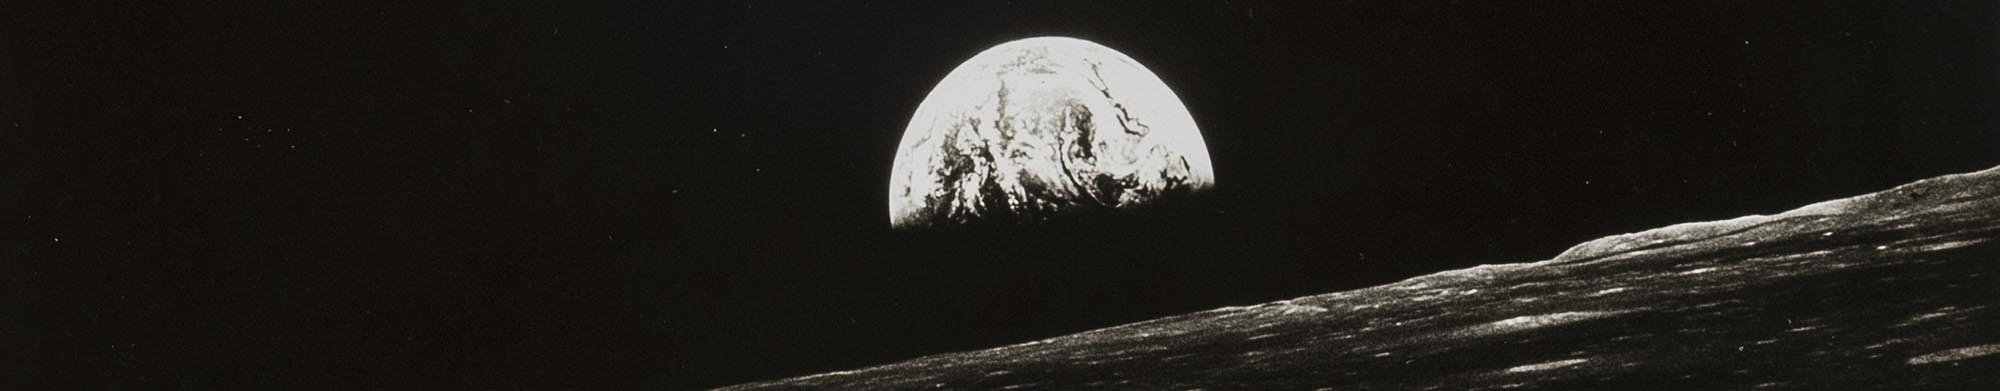 THE MOON: Vintage NASA Photographs 1964-1972 (Online Only)